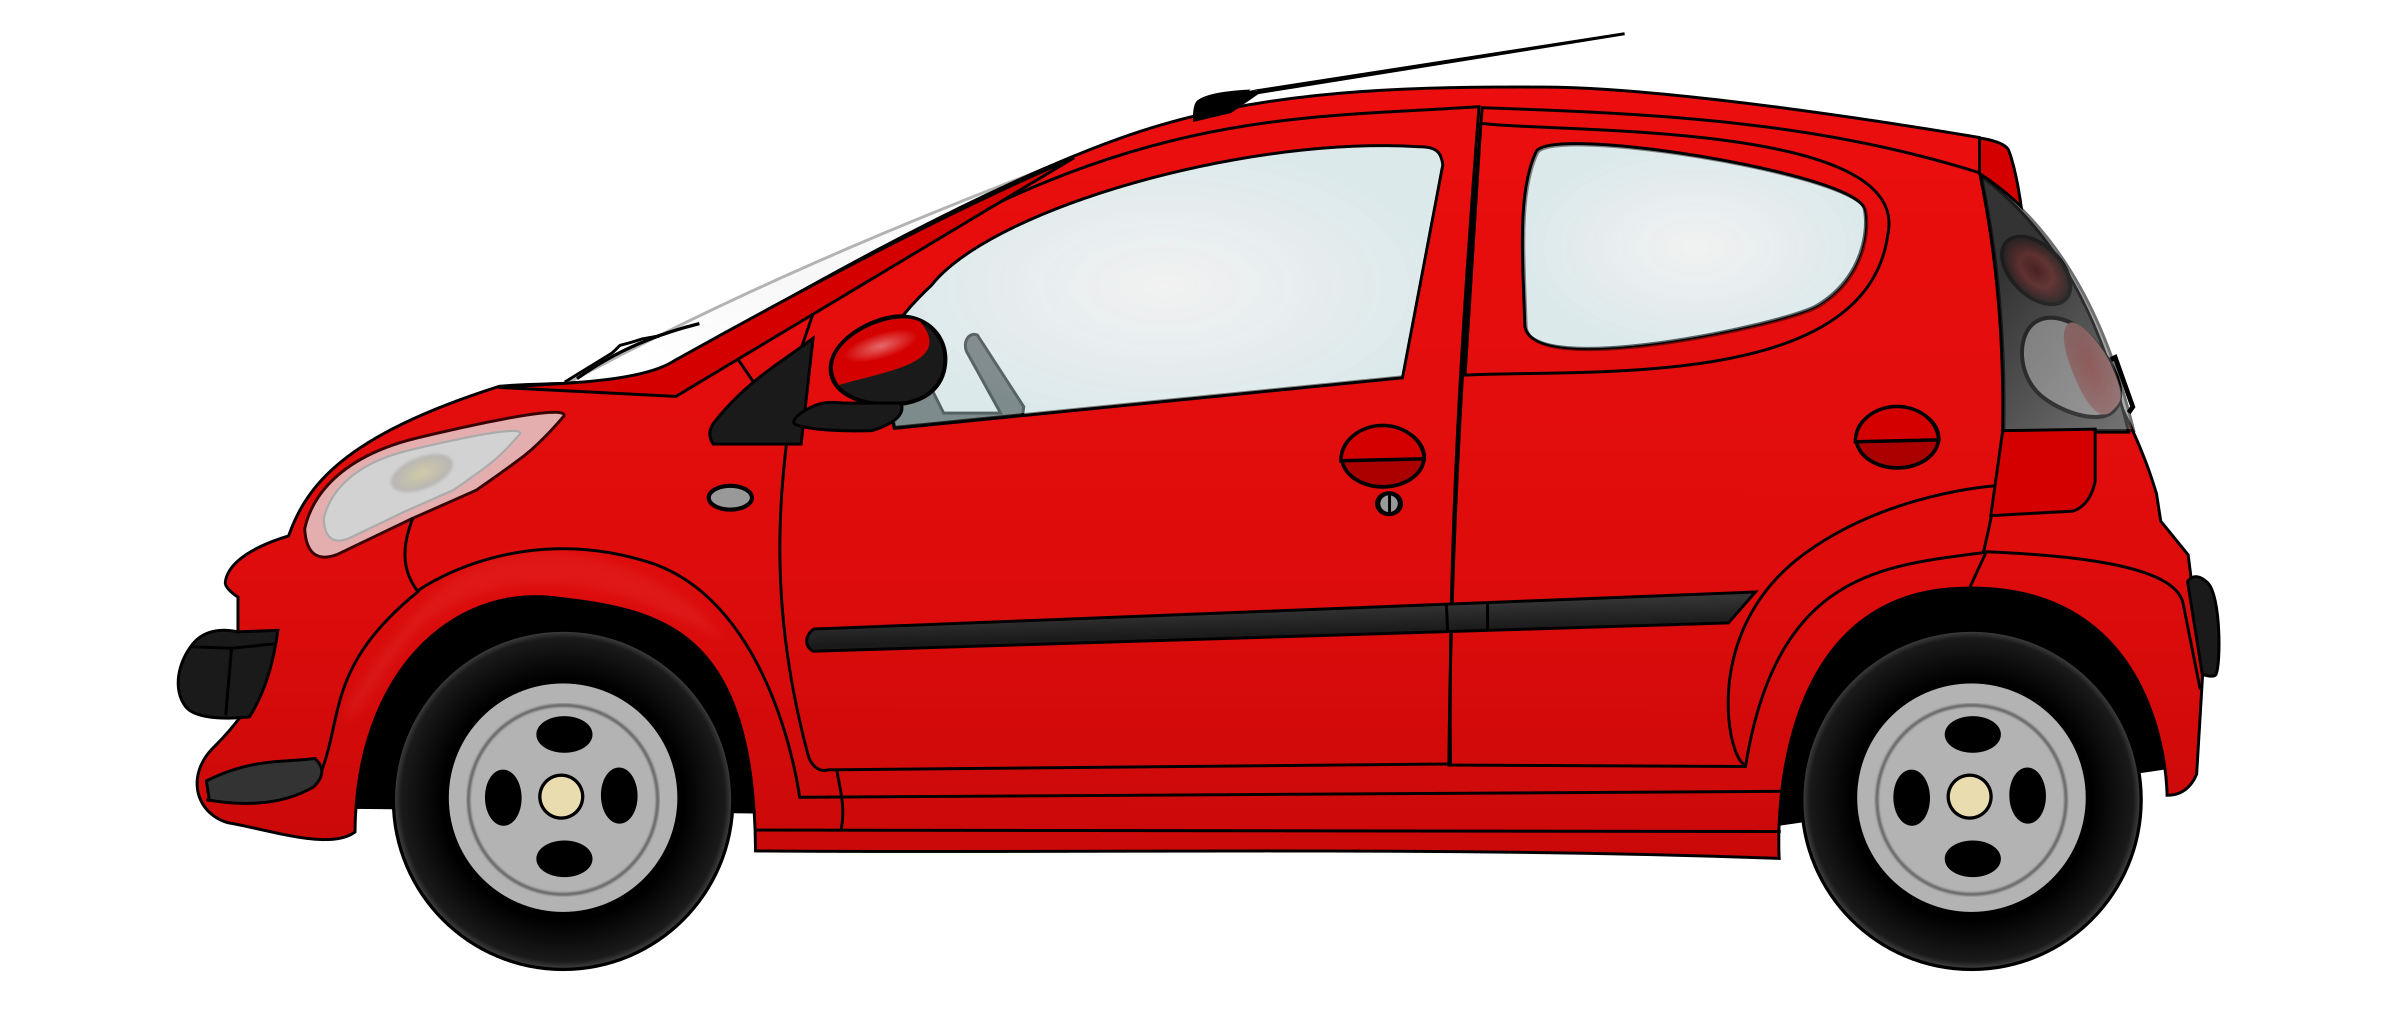 Red car clipart image transparent library Clipart - Little red car image transparent library